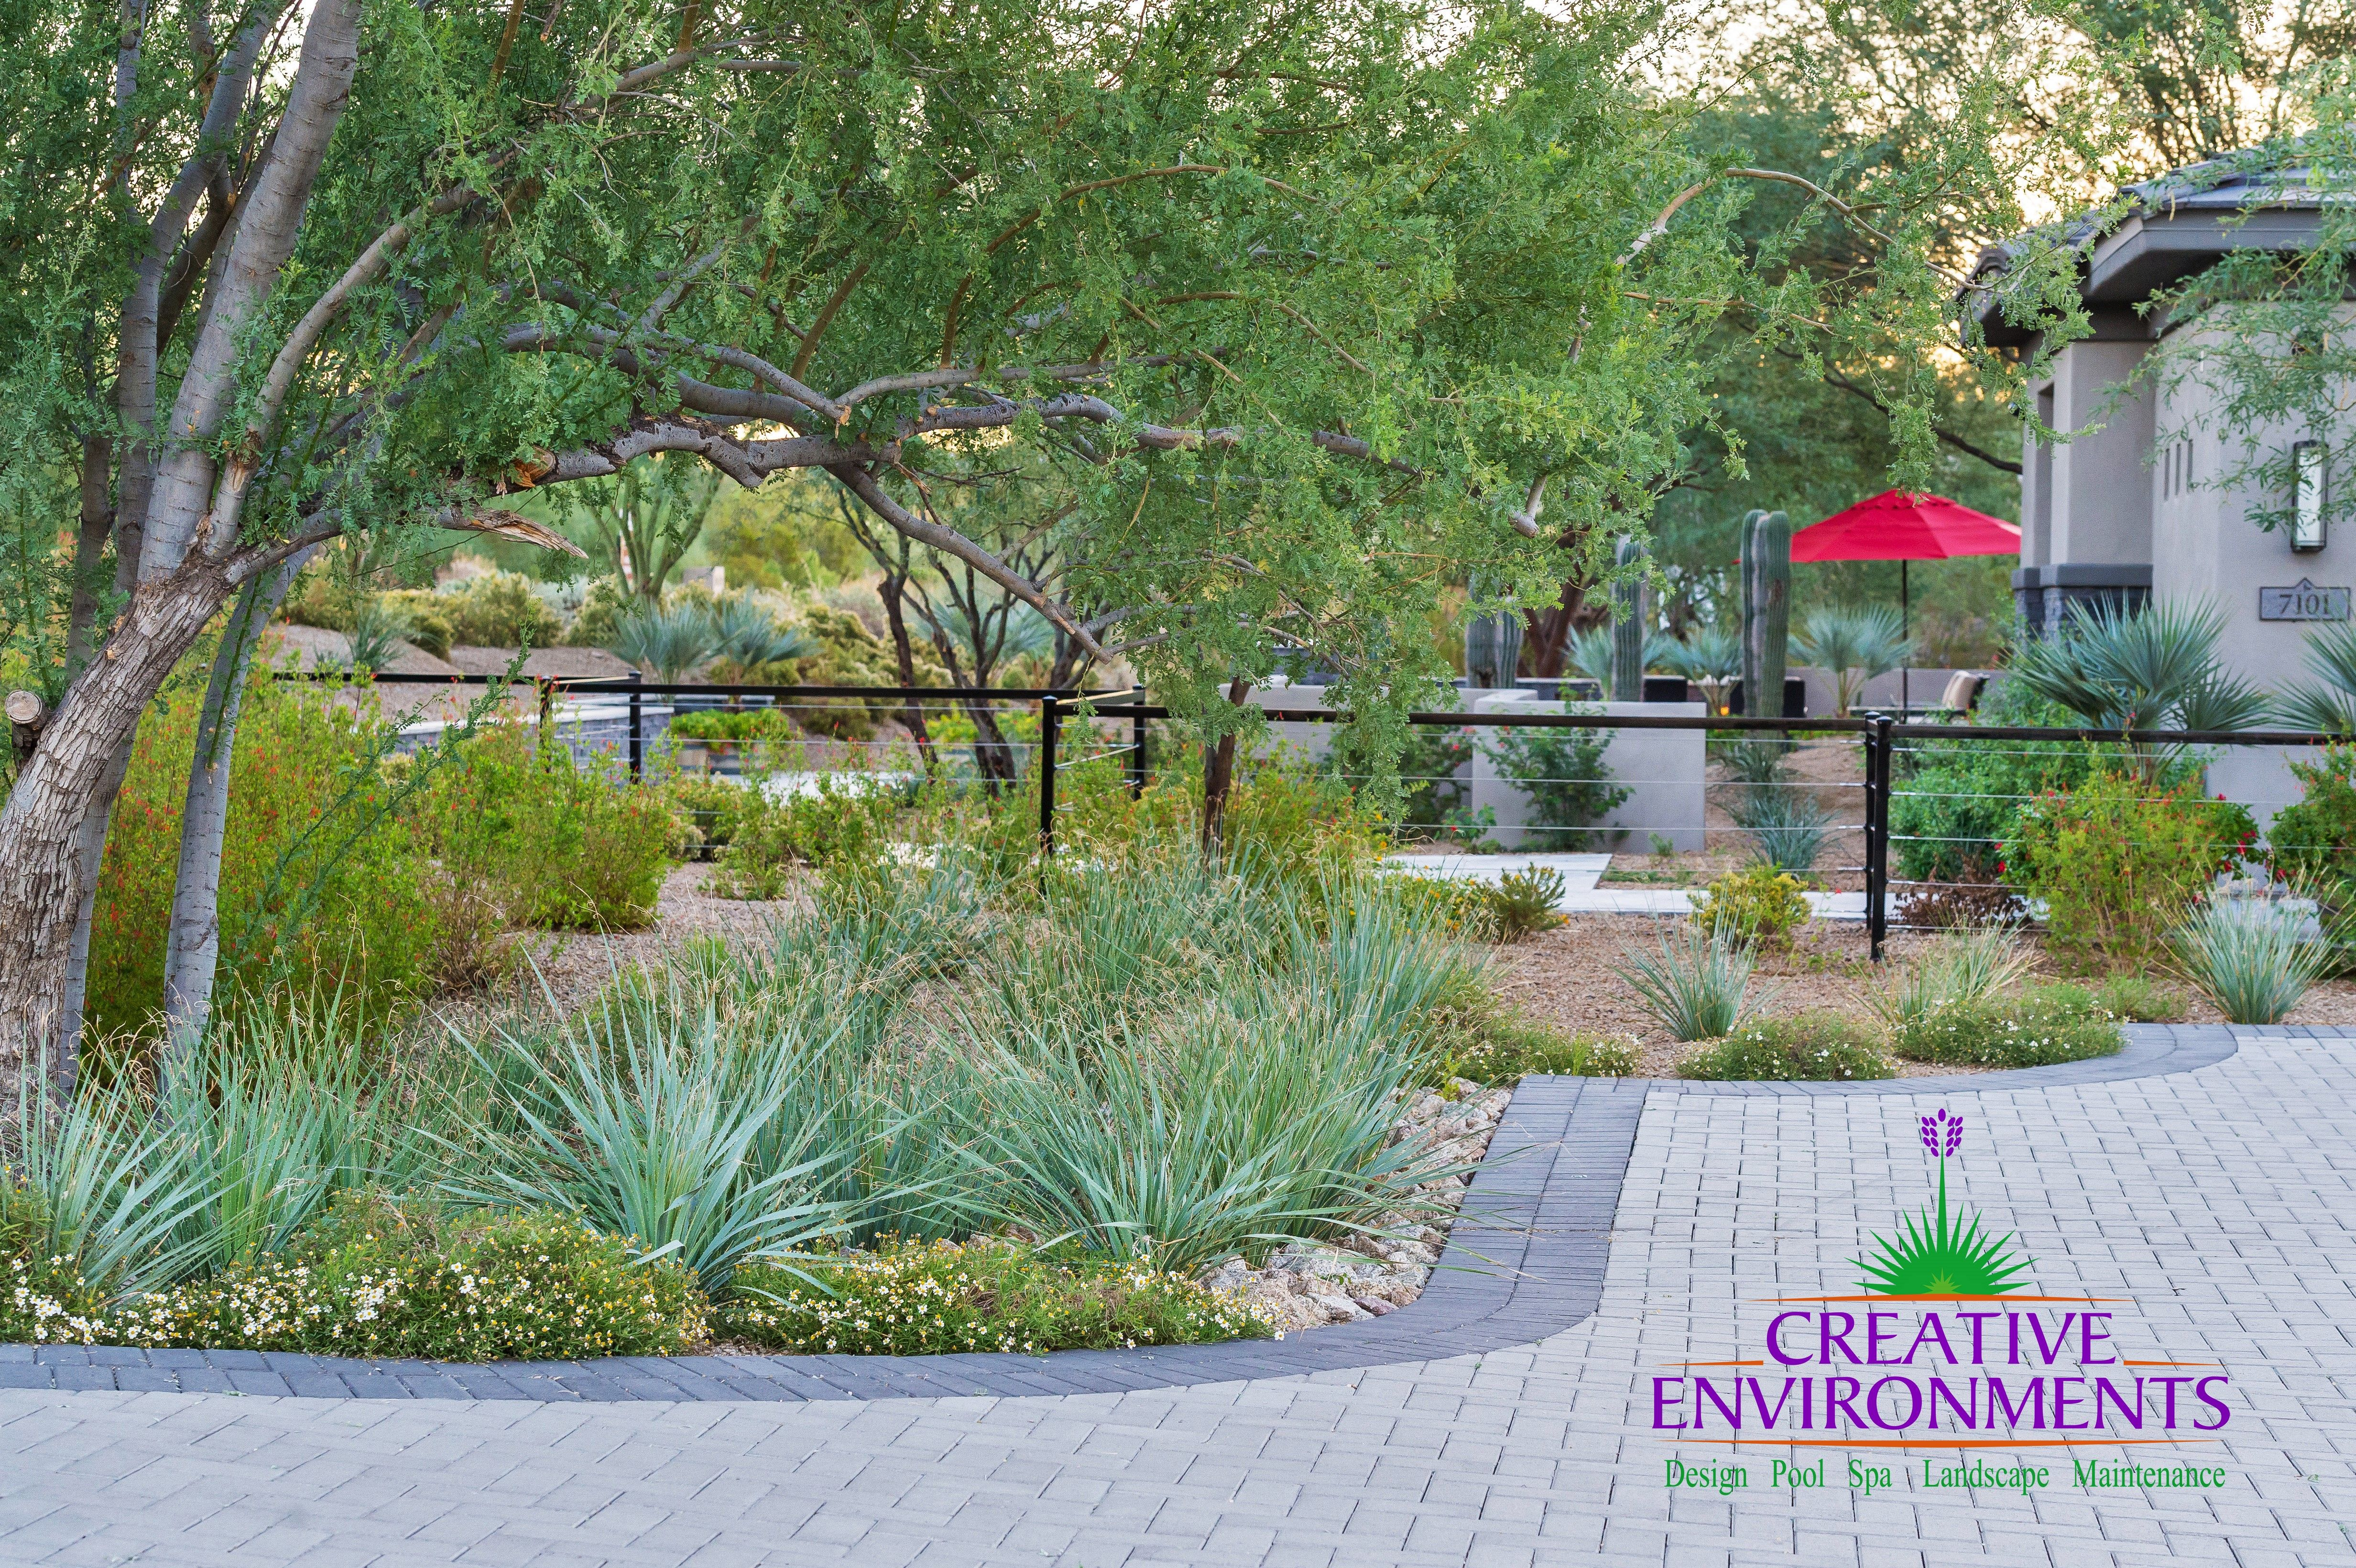 With Our Landscape Design Services You Can Rest Assured Knowing